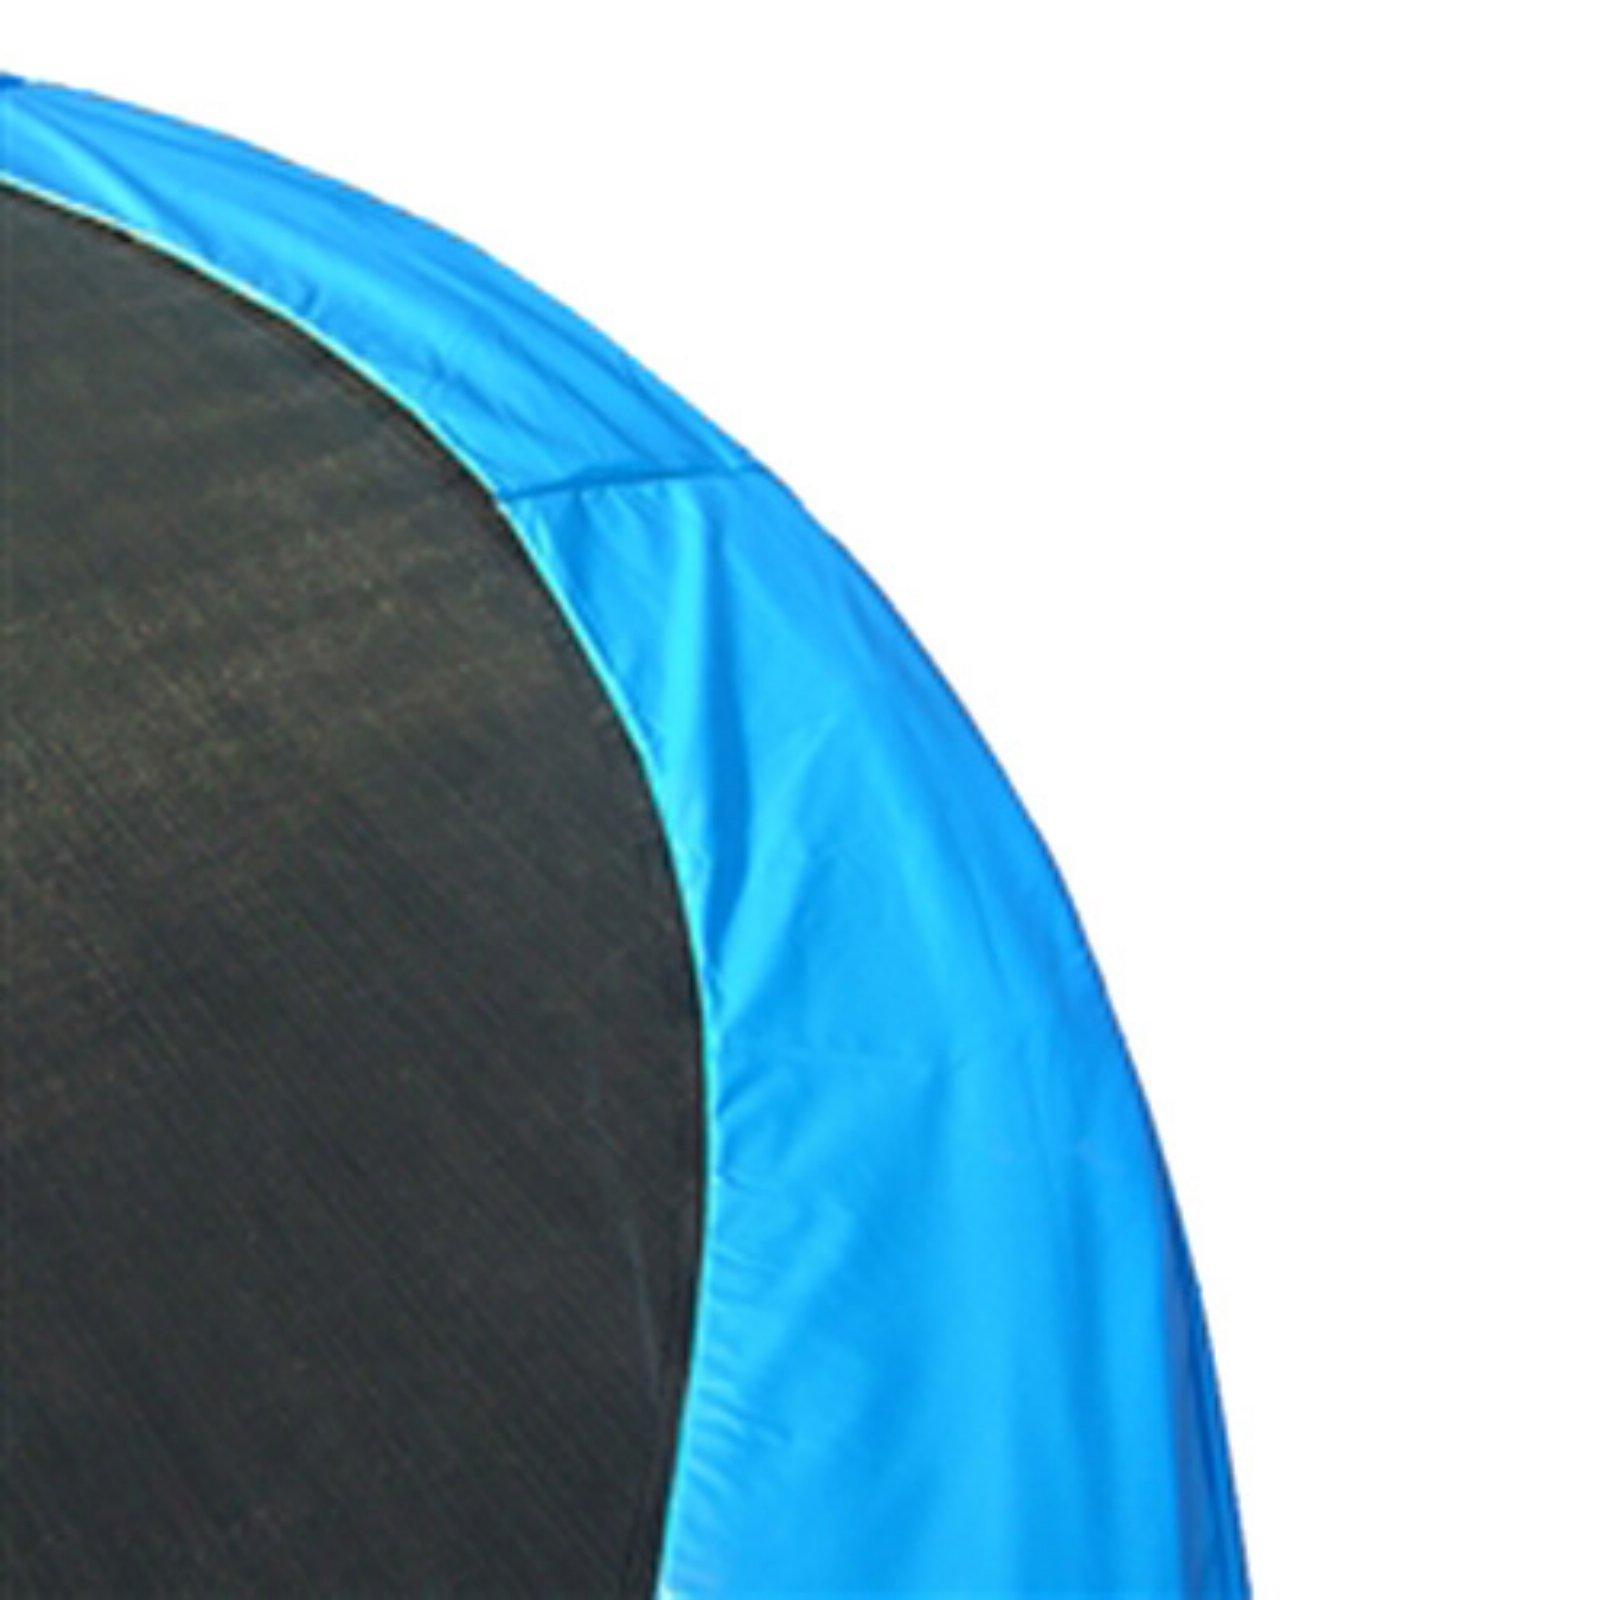 Super Jumper 14 ft. Trampoline Pad